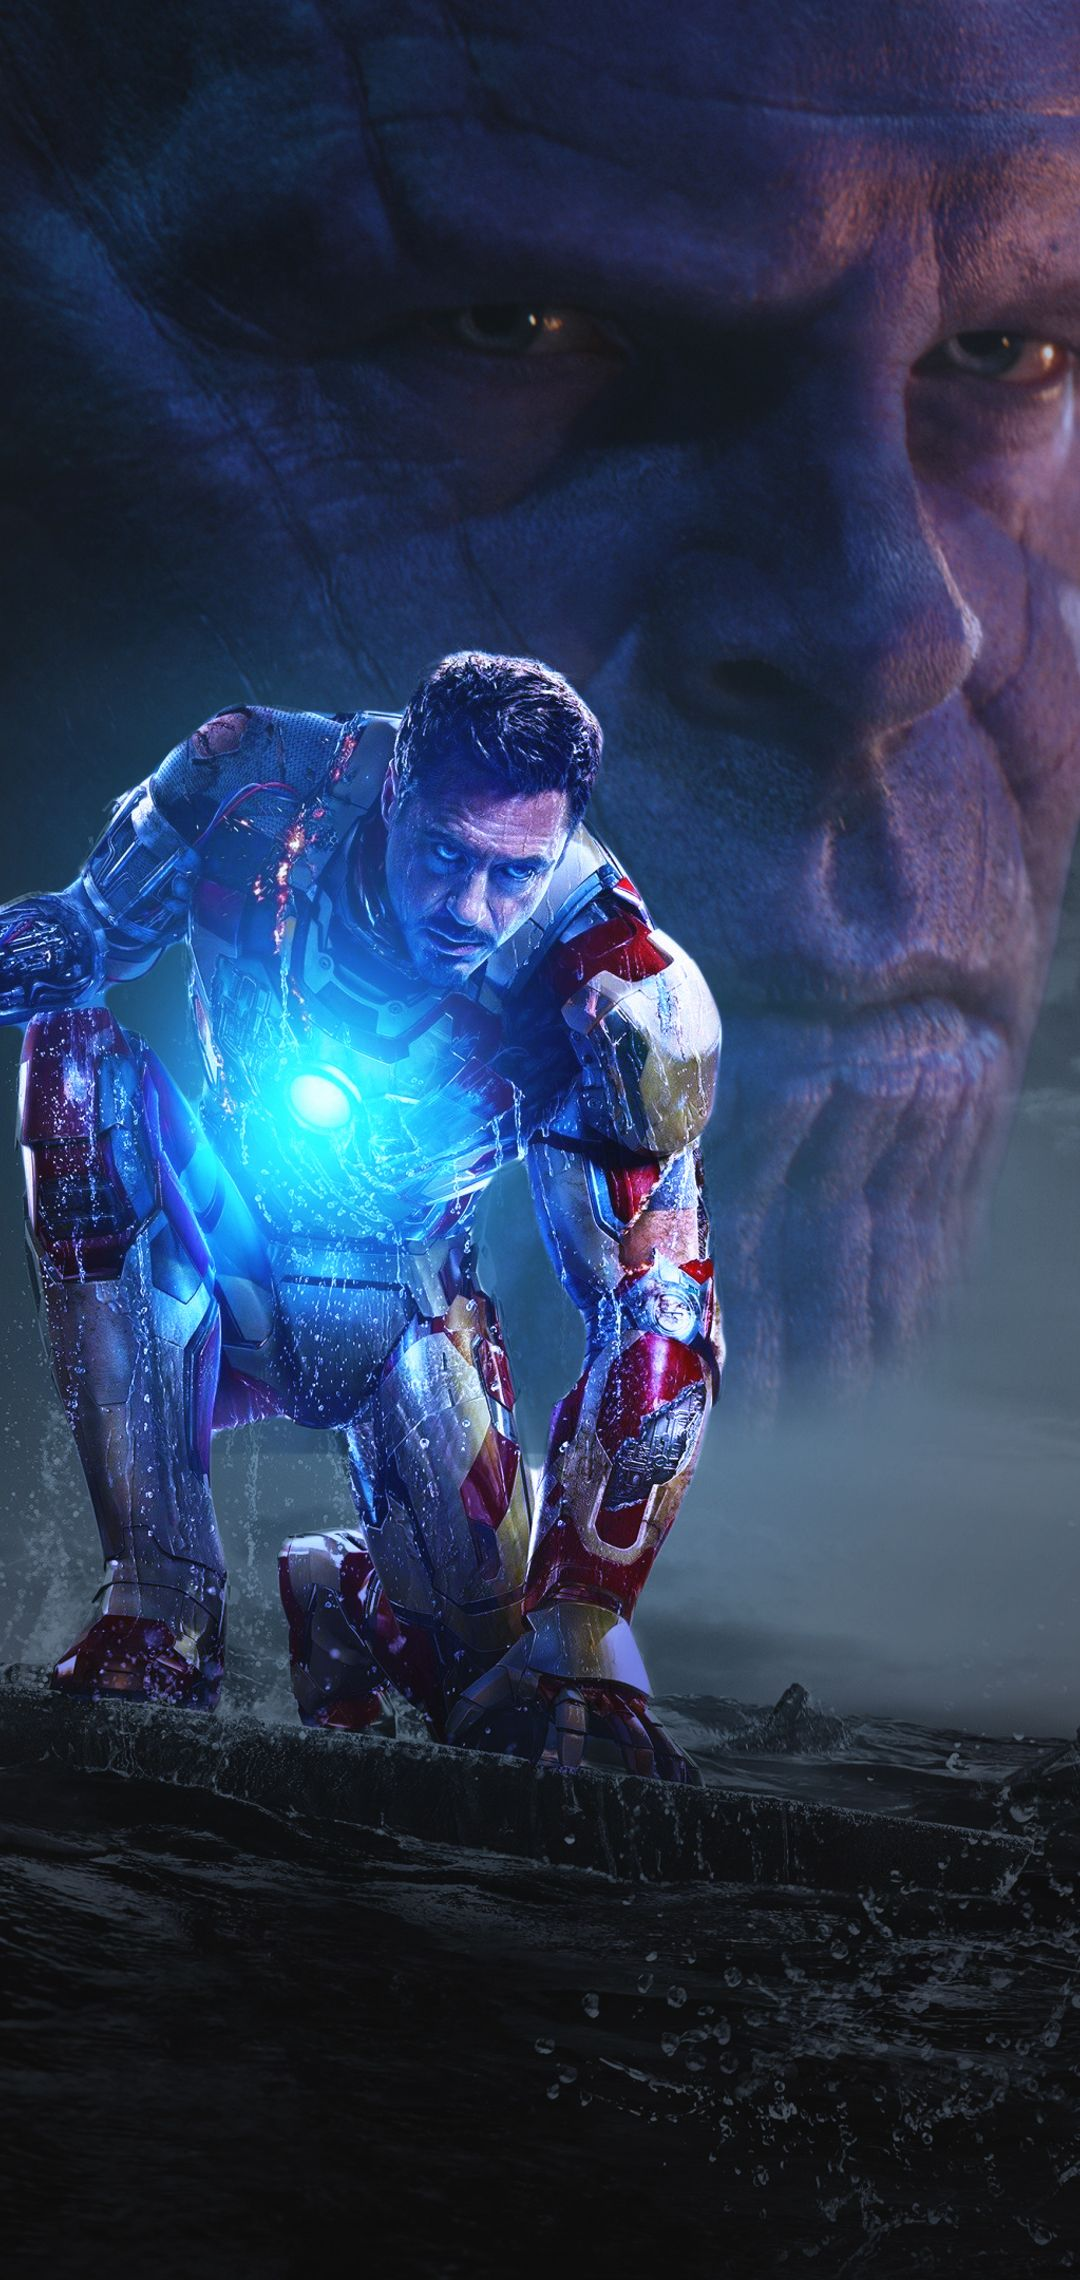 1080x2280 Iron Man And Thanos In Avengers Infinity War One Plus 6 Huawei P20 Honor View 10 Vivo Y85 Oppo F7 Xiaomi Mi A Avengers Infinity War Avengers Iron Man